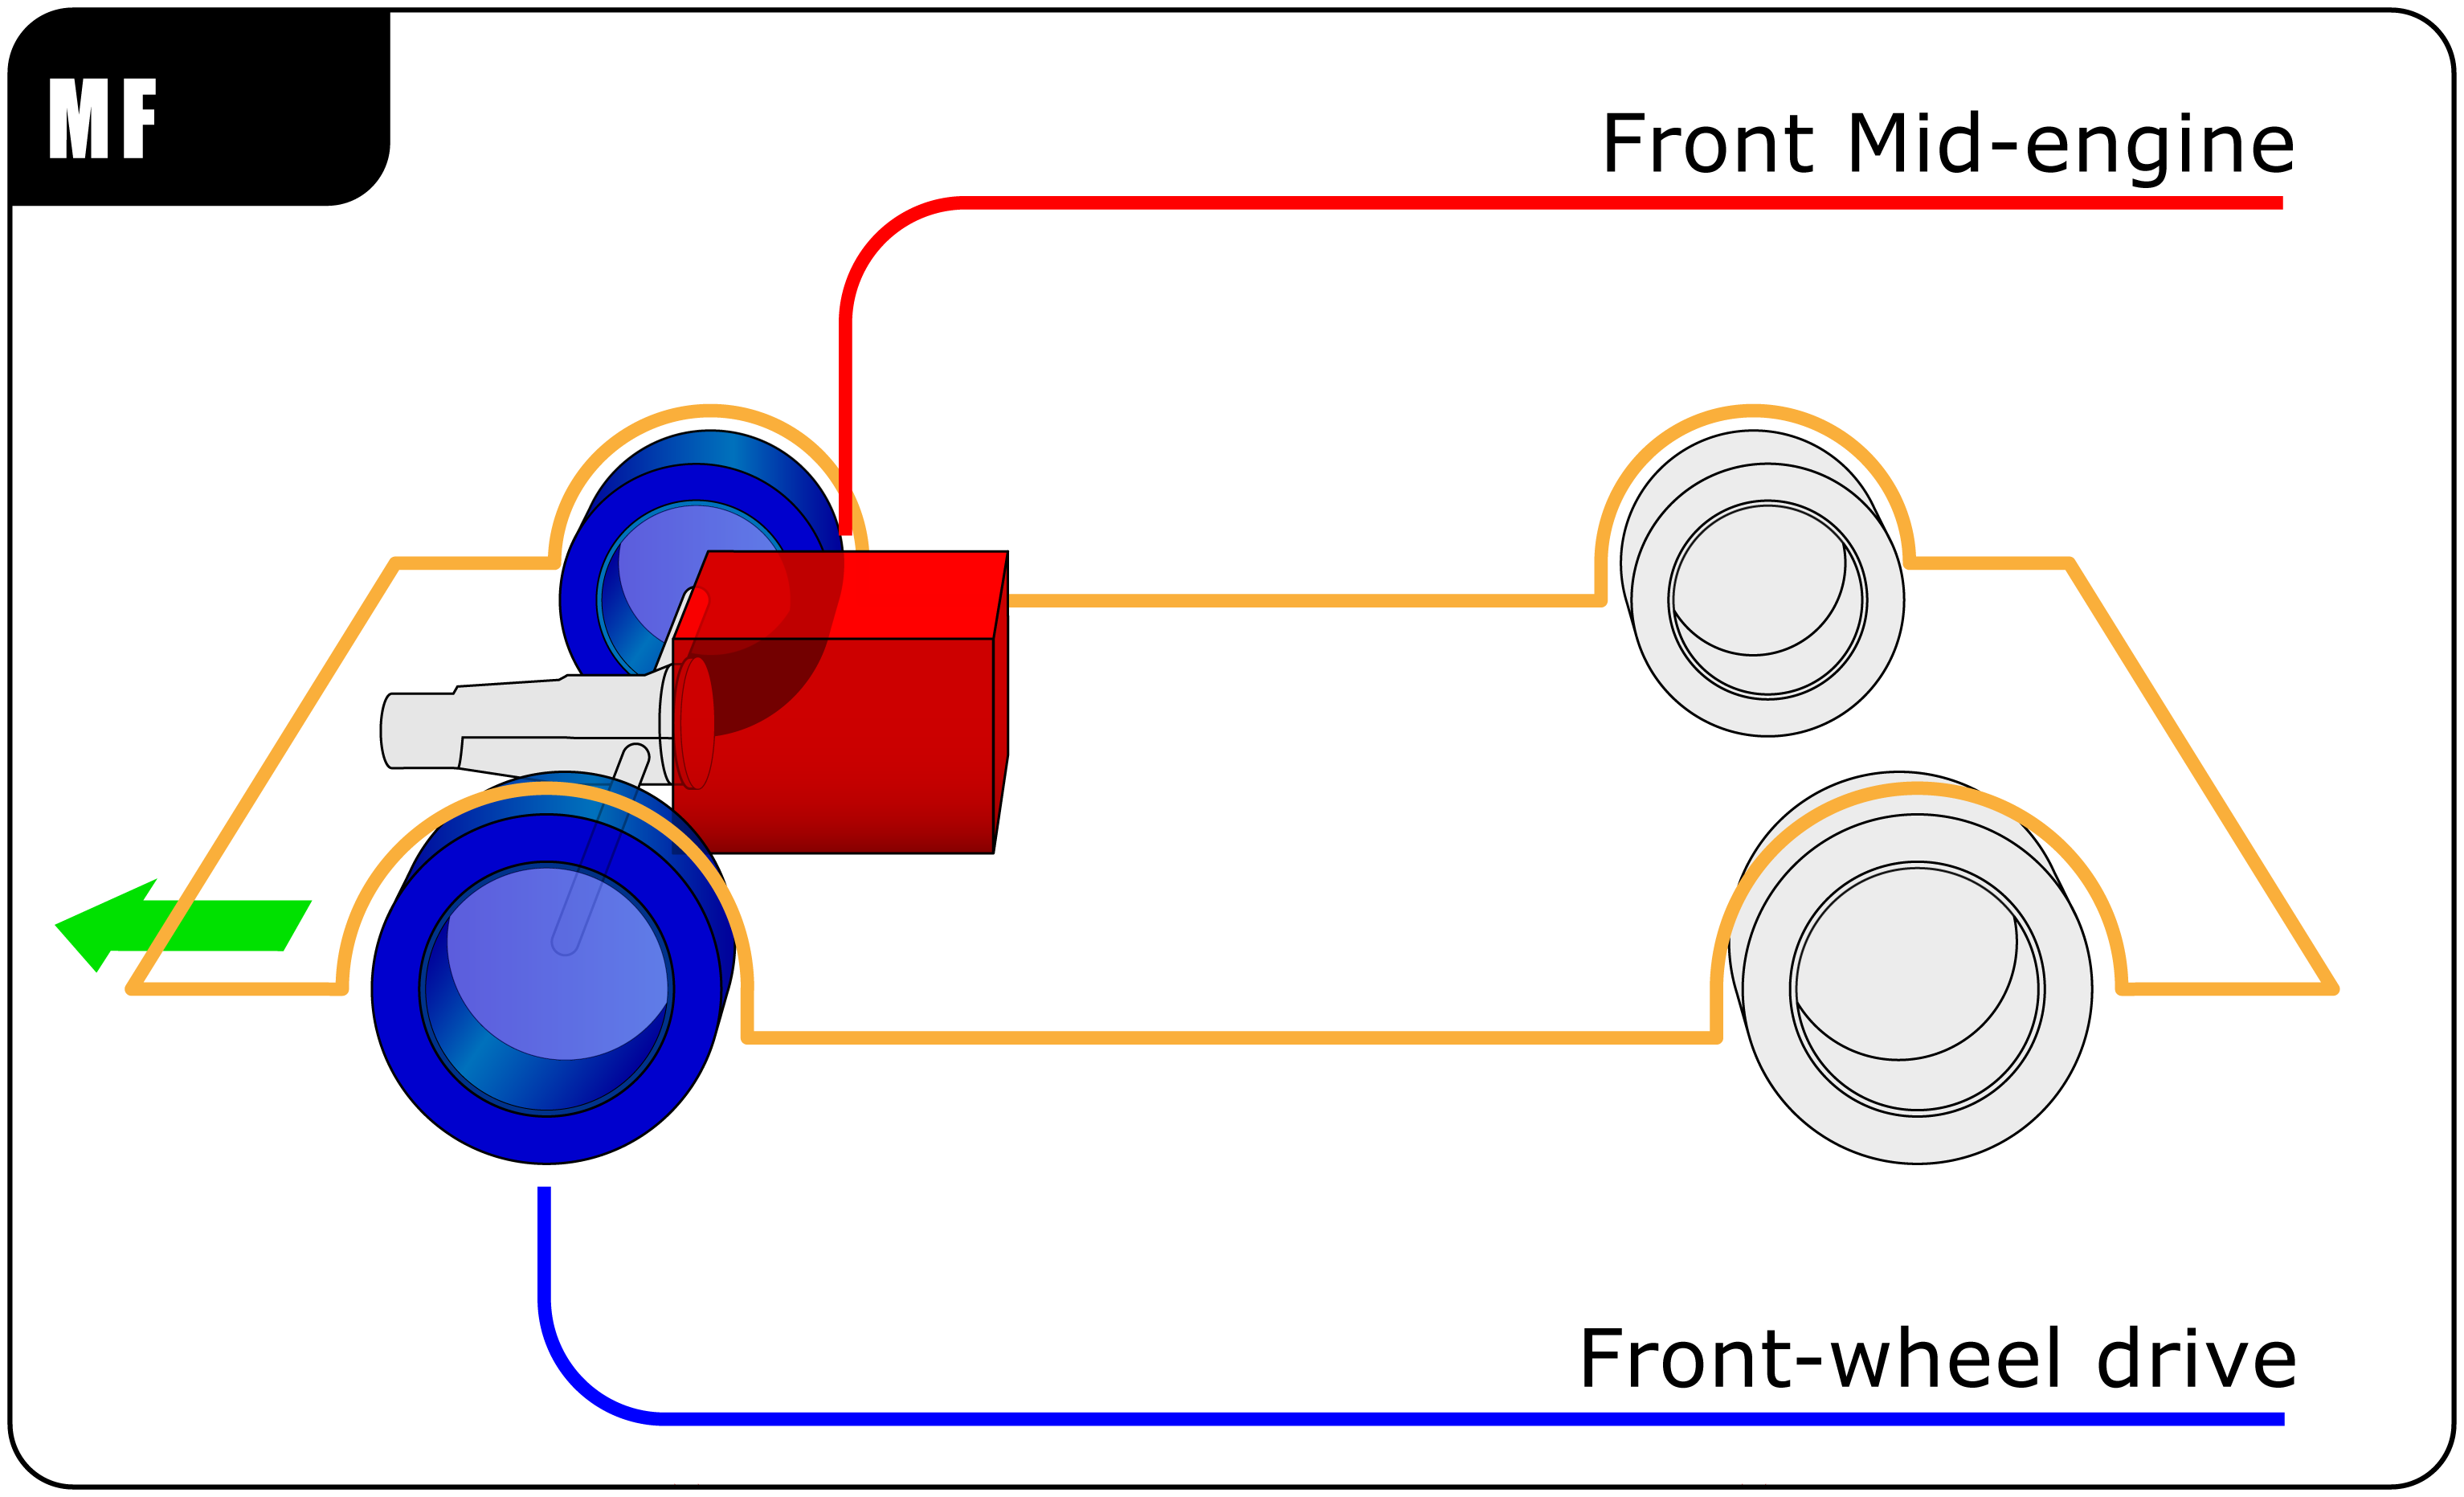 Mid-engine, front-wheel drive layout